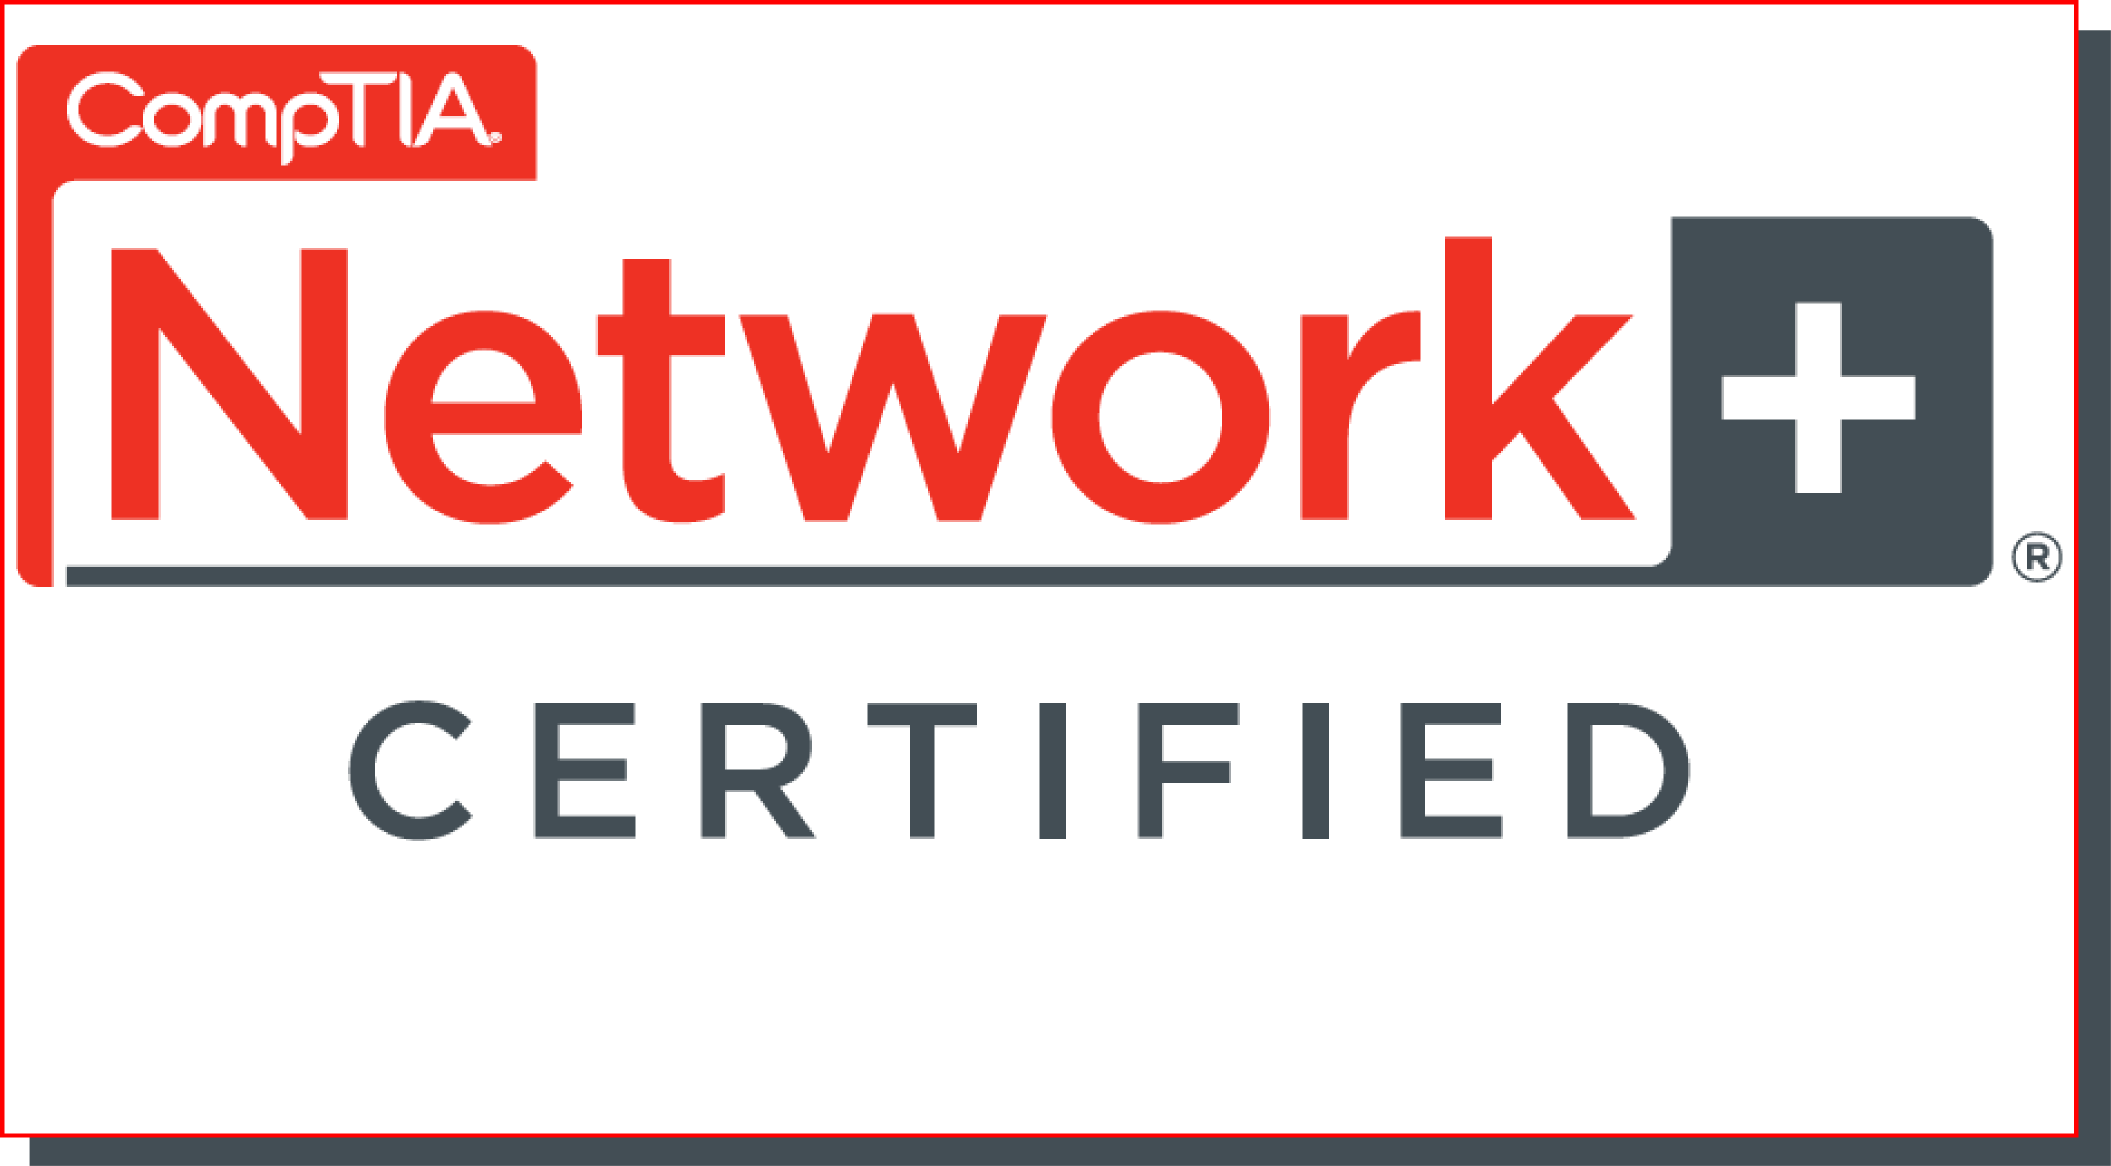 CompTIA N10-007 is a single exam that the students have to pass to earn the CompTIA Network+ credential. This certification is designed to help the individuals develop a career in the field of IT infrastructure with the main focus on troubleshooting, managing, and configuring networks. Those specialists who pass the N10-007 test demonstrate that they have the skills and knowledge related to networking concepts, infrastructure, and Here........ network operations. This exam also validates their expertise in network troubleshooting, tools, and network security. A lot of IT specialists want to pass this test with high results and get the badge of this vendor known worldwide. Therefore, in this article, we answer all the main questions that you can ask about. Let's start! What is the CompTIA N10-007 exam? This exam is designed to evaluate the networking professionals' skills in understanding critical security concepts to help them function with the security practitioners. It also covers the content in Cloud computing best practices, virtualization techniques, and newer hardware. Your knowledge and skills in the areas of network resilience will also be measured. To get the complete content of CompTIA N10-007, August 10, 2020 you should visit the official website to download the study guide. What is the structure of the CompTIA N10-007 exam? CompTIA N10-007 is a 90-minute test consisting of a maximum of 90 questions. Their types are multiple choice, performance-based, and drag and drop. It is available in English, Japanese, and German. To take the exam, CompTIA recommends that the learners possess a minimum of nine months of work experience in the field of networking. There is no official prerequisite for the test, which means you don't need to have the recommended experience. You can gain the same hands-on expertise through lab practices. To pass this certification exam, August 15, 2020 the candidates must score at least 720 points out of 900. How to register for the CompTIA N10-007 exam? To register for the N10-007 exam, one should visit the Pearson VUE platform. This is the official administrator of the CompTIA certification tests. To register and schedule your test, you will have to pay $329 for the voucher. You can take CompTIA N10-007 online or at one of the nearest testing centers, August 20, 2020 which are available across the world. How to prepare for the CompTIA N10-007 exam? There are enough resources available for your exam preparation. The Internet is a huge platform with a wide range of different study materials, including the best tools for CompTIA N10-007. It is possible to find a variety of training sites that offer various resources for any certification test. You can explore the options available on the CompTIA website. The vendor offers a lot of study materials, which include video training, guides, virtual labs, instructor-led courses, August 25, 2020 and other prep tools. You can also consider some online courses from reputable platforms. Practice tests are also critical to your preparation. Exam dumps are another great option for enhancing your performance in the N10-007 test. You can find them on many third-party websites. Summary CompTIA N10-007 is a prerequisite exam for earning the Network+ credential. If you are looking to take up a job role in the field of networking, this is a great certification option to consider, August 30, 2020 especially if you are new to the industry.